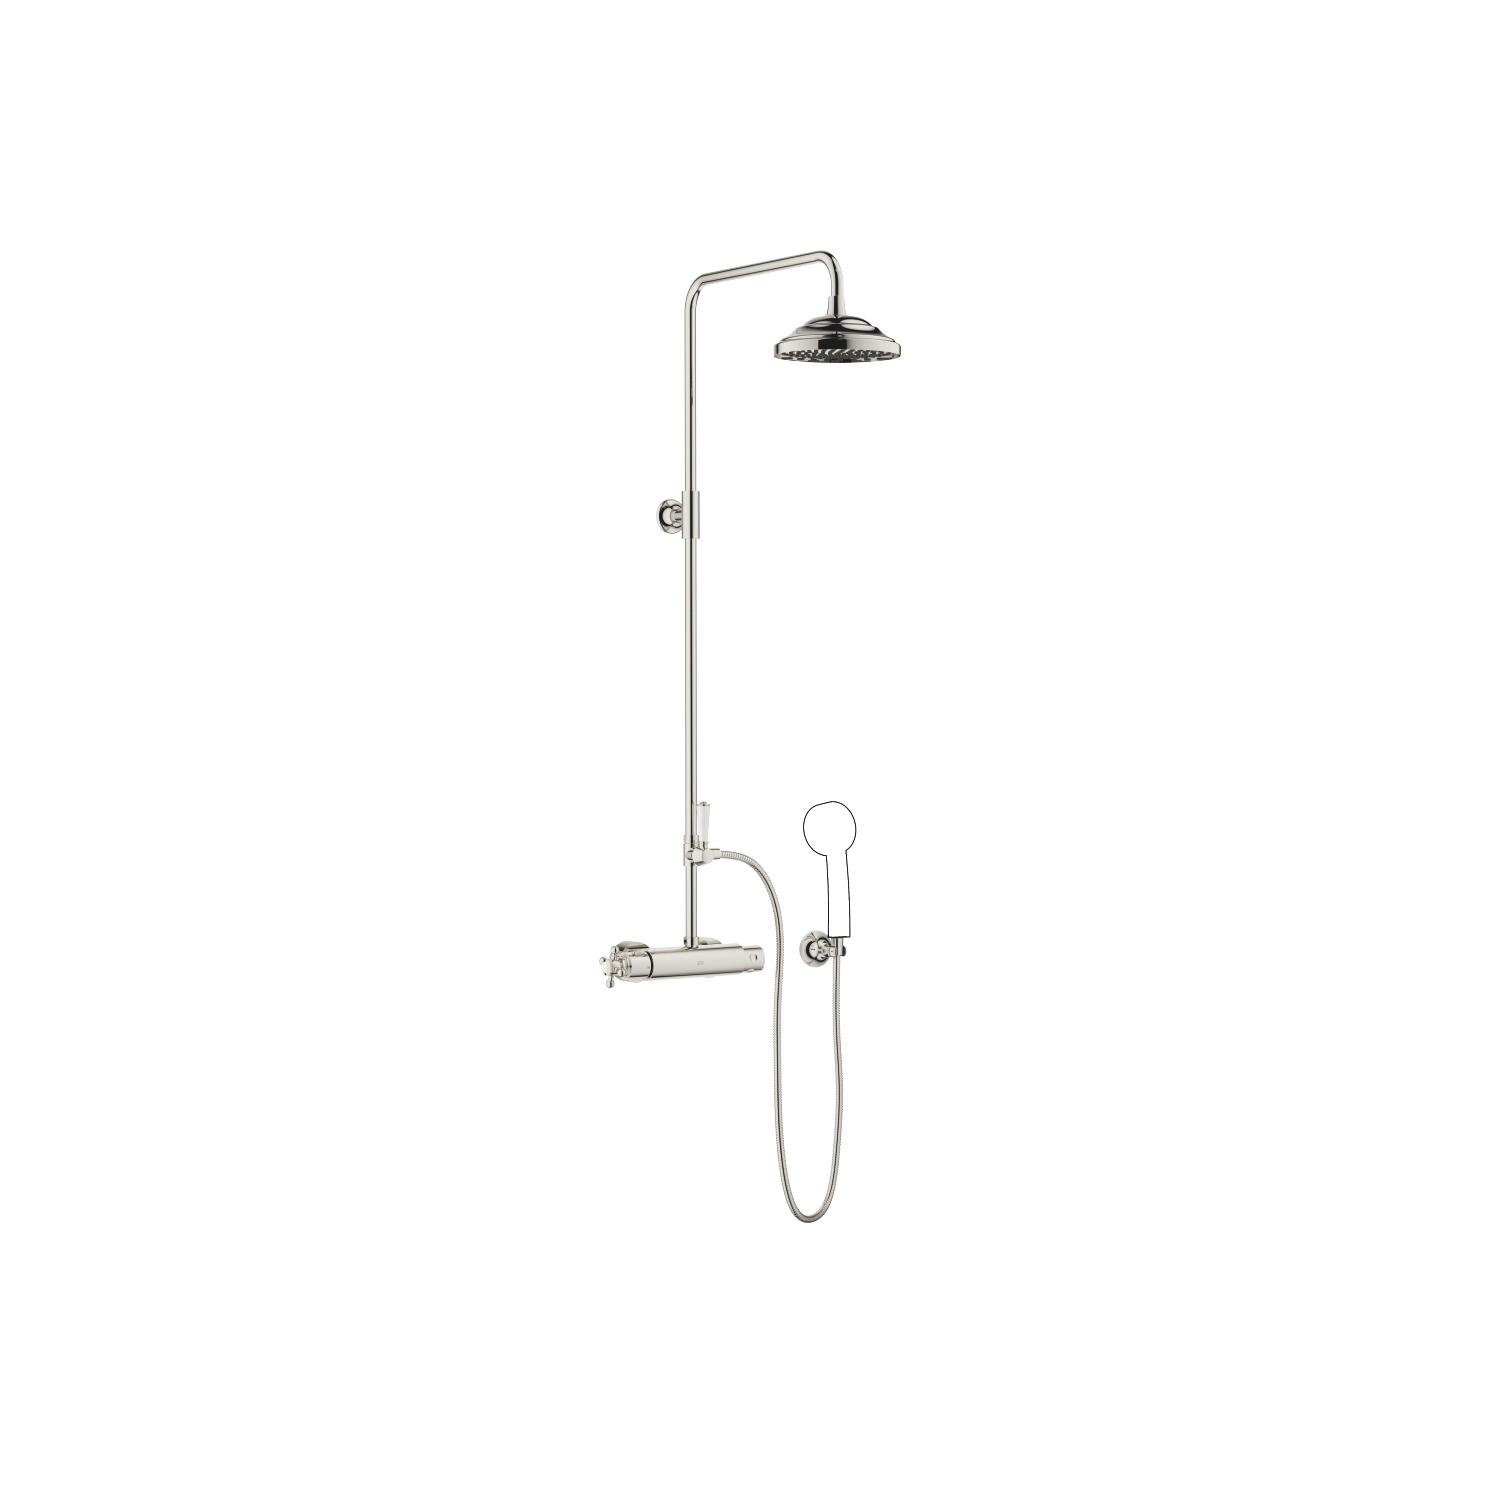 Showerpipe with shower thermostat without hand shower - platinum